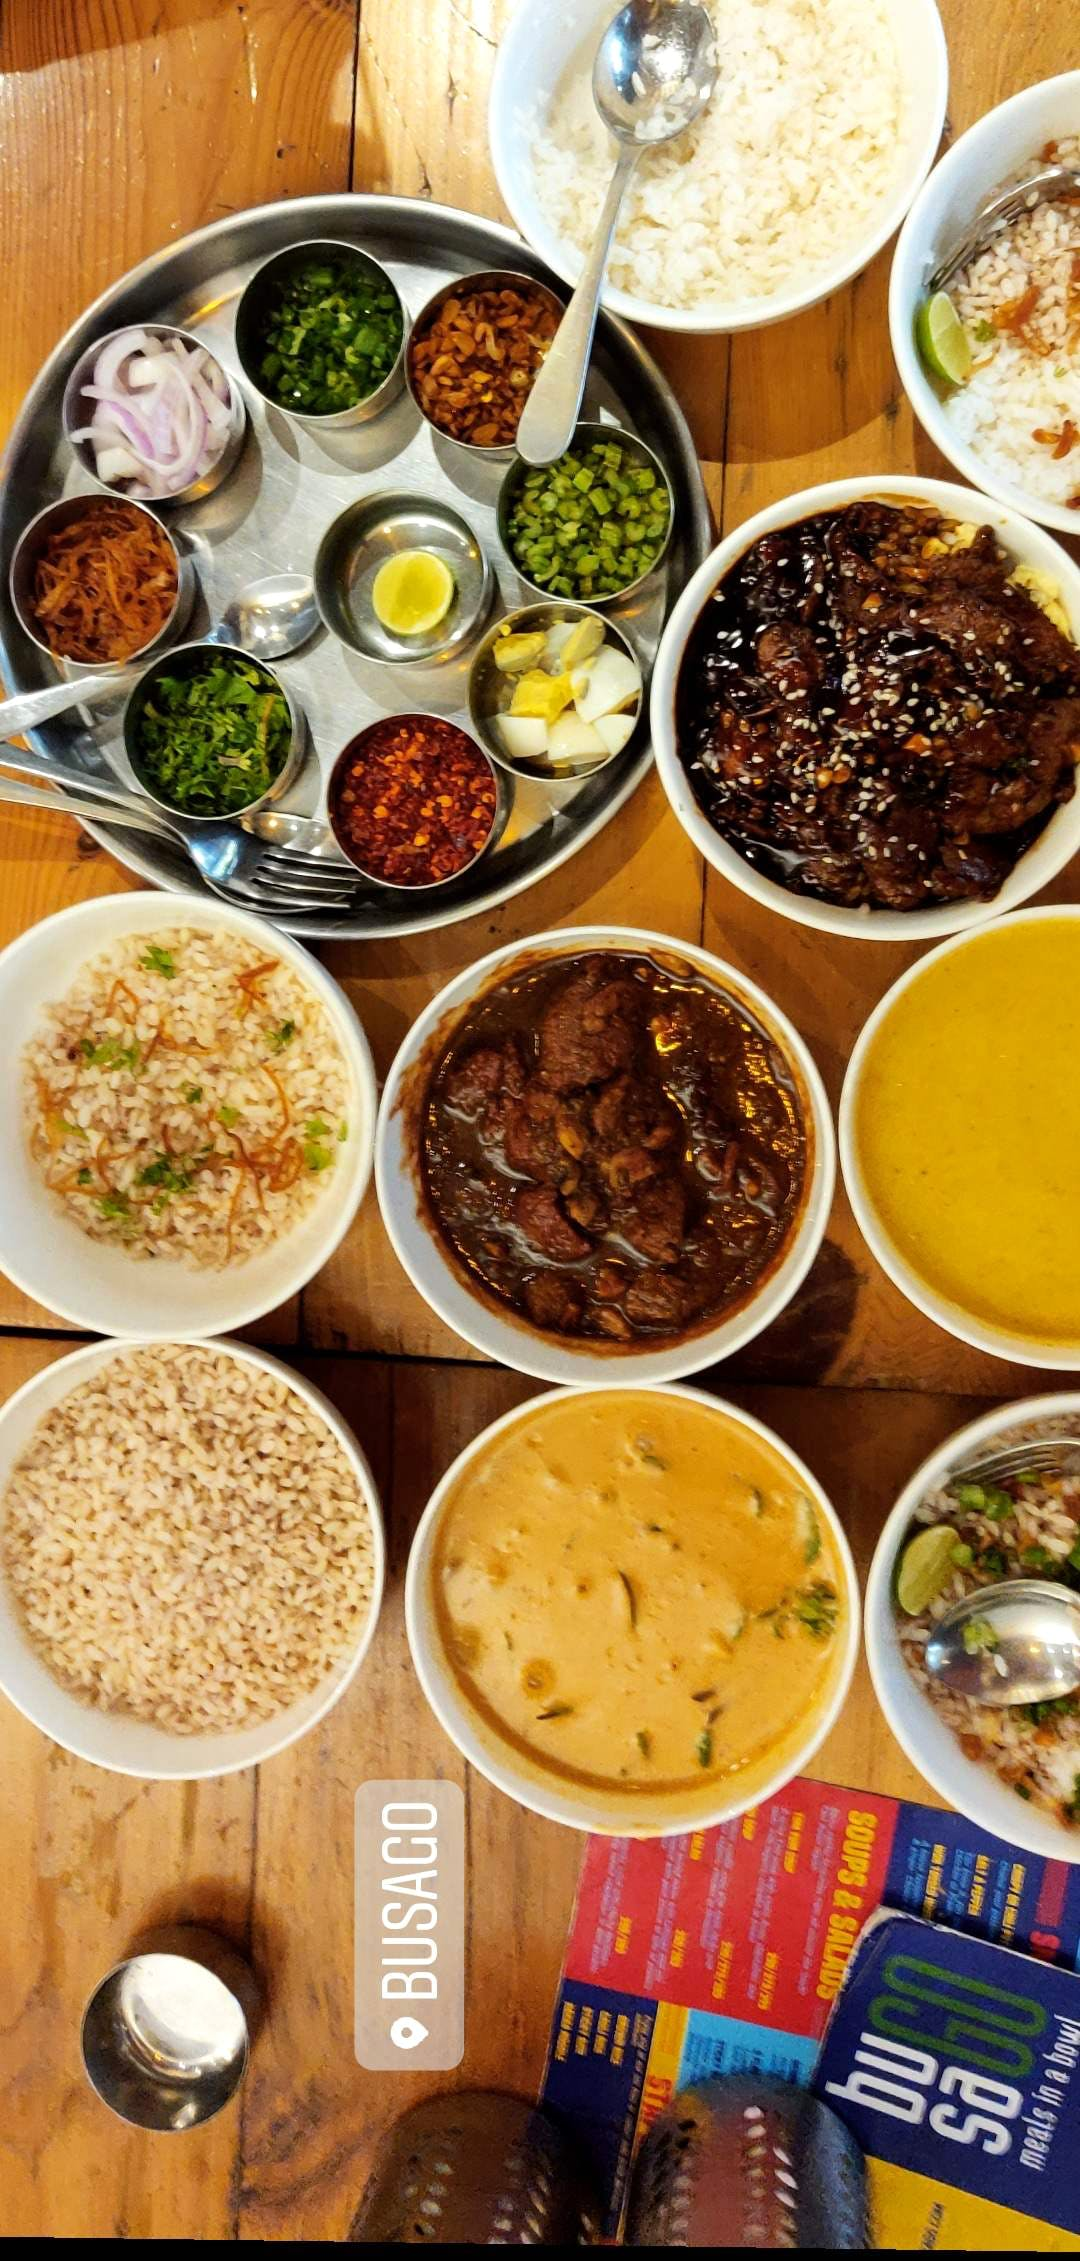 Dish,Food,Cuisine,Ingredient,Meal,Produce,Lunch,Vegetarian food,Banchan,Rajasthani cuisine